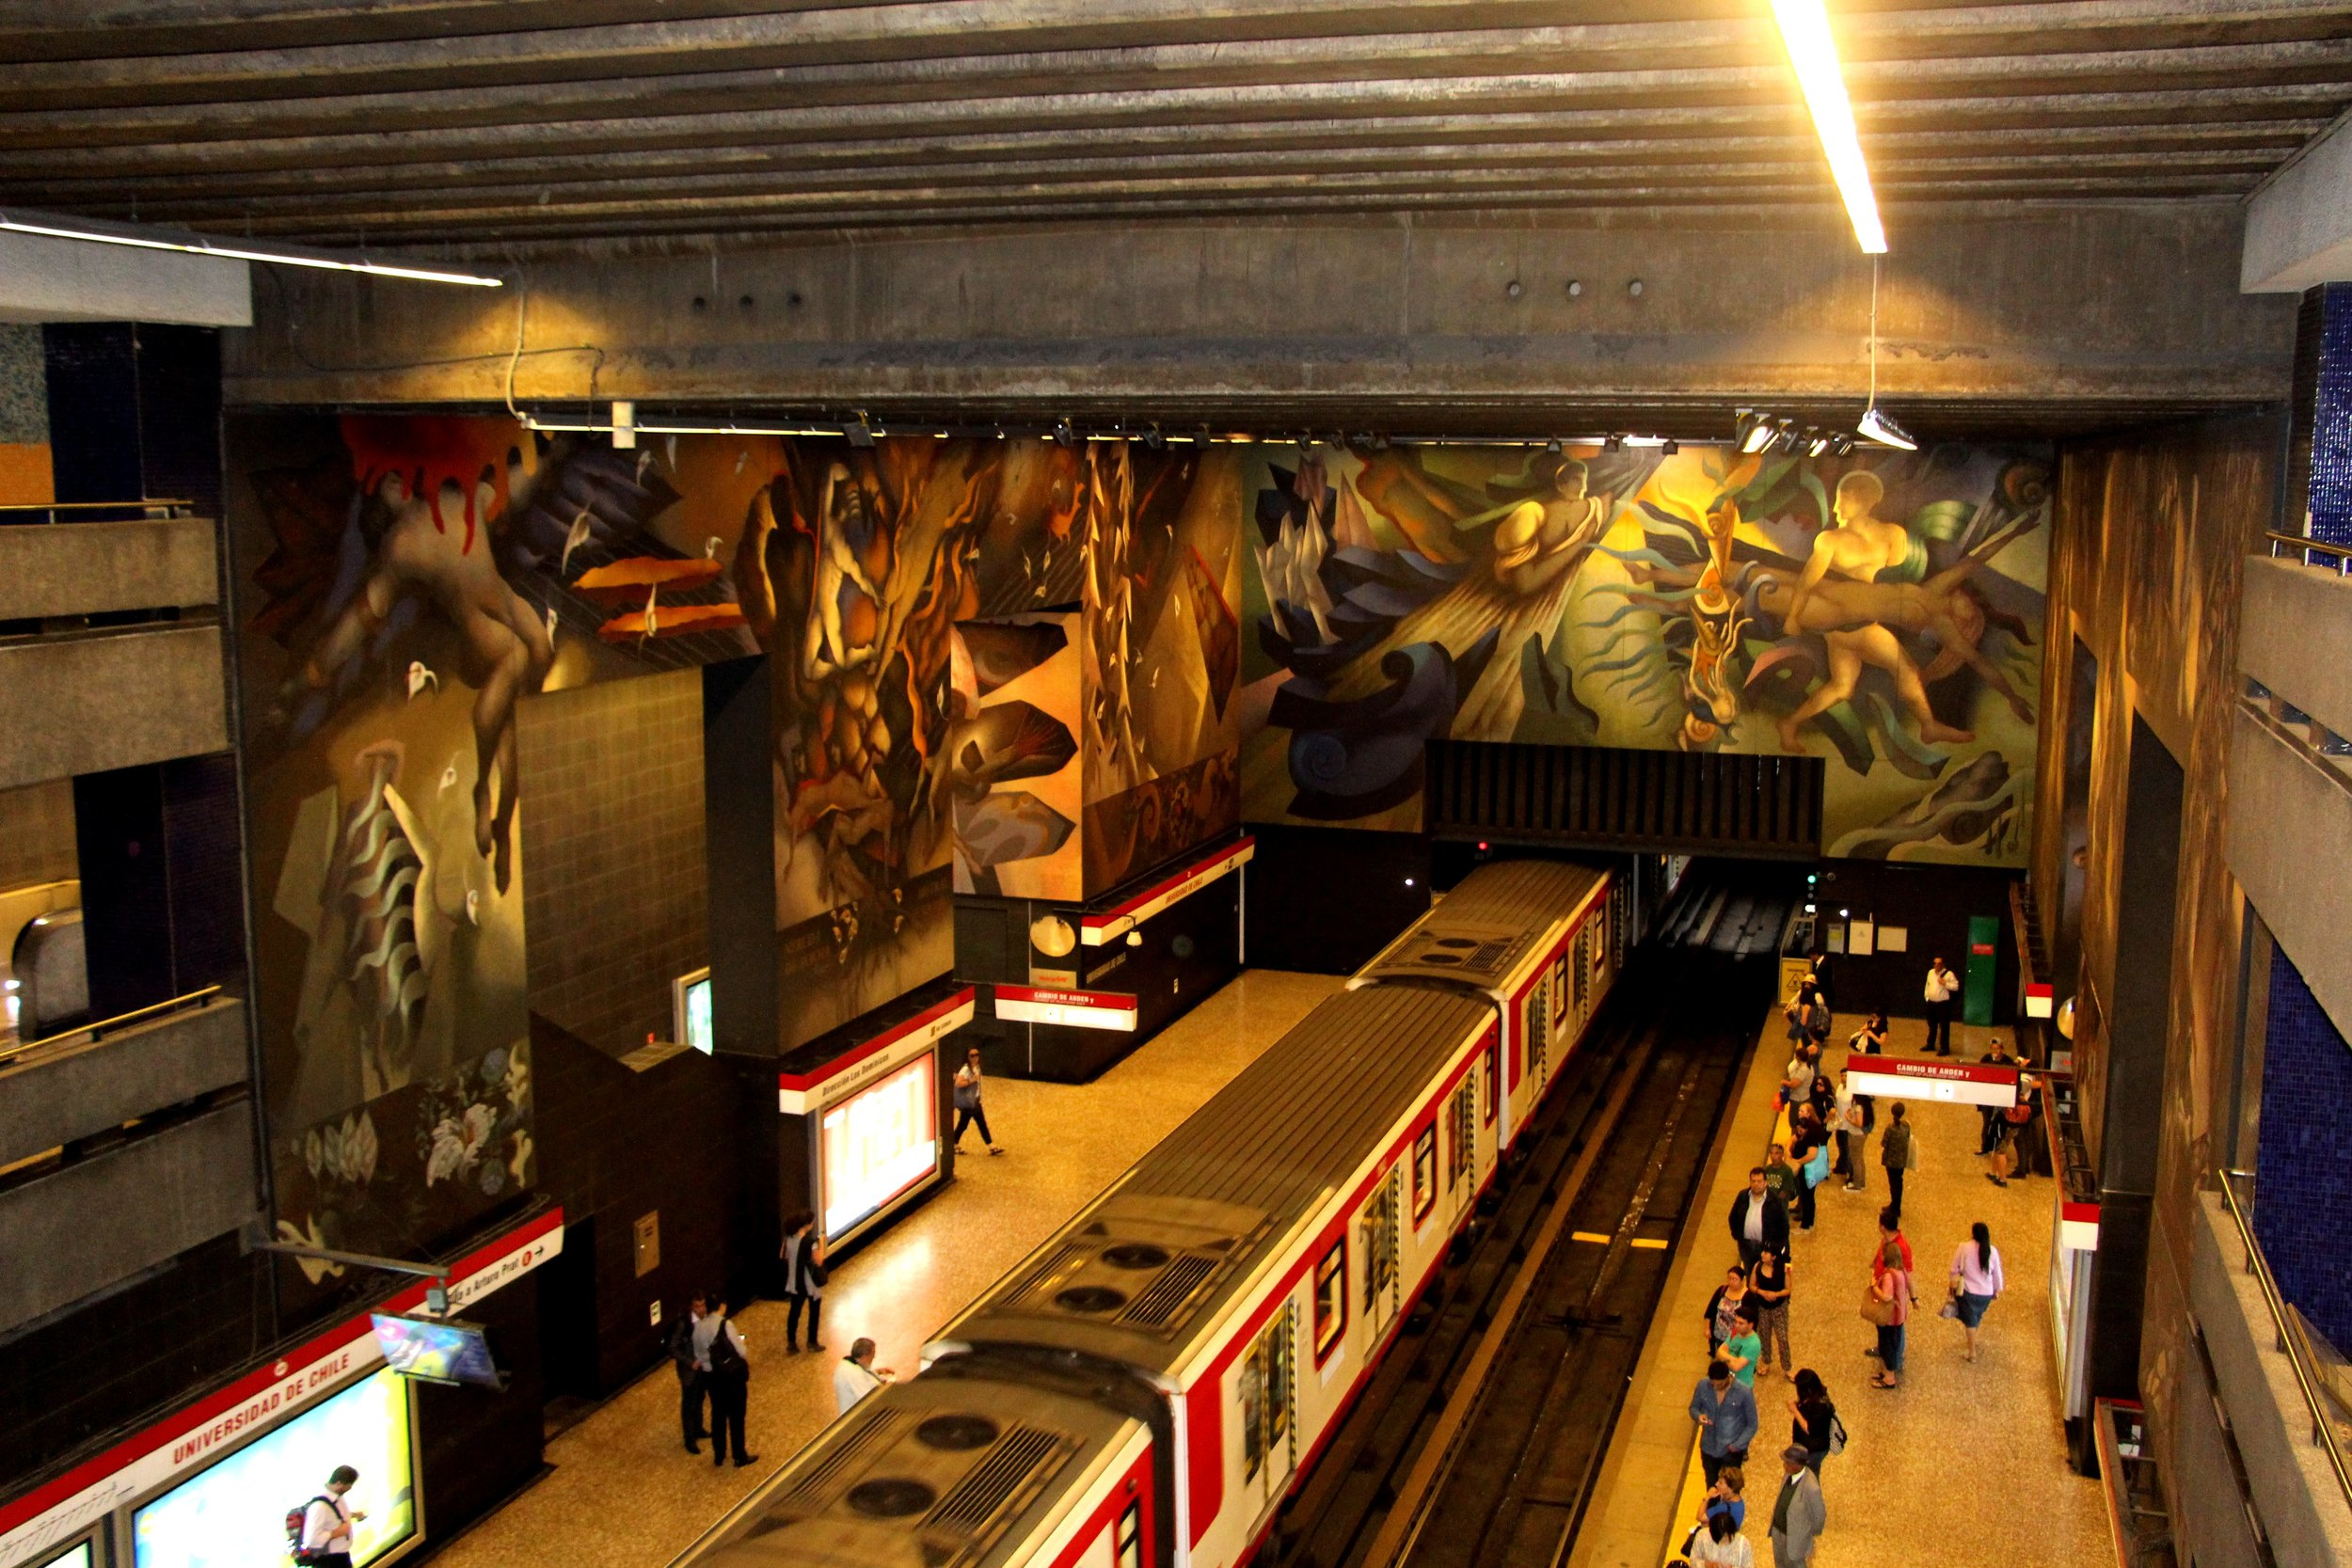 Santiago even has art in their Subway stations.